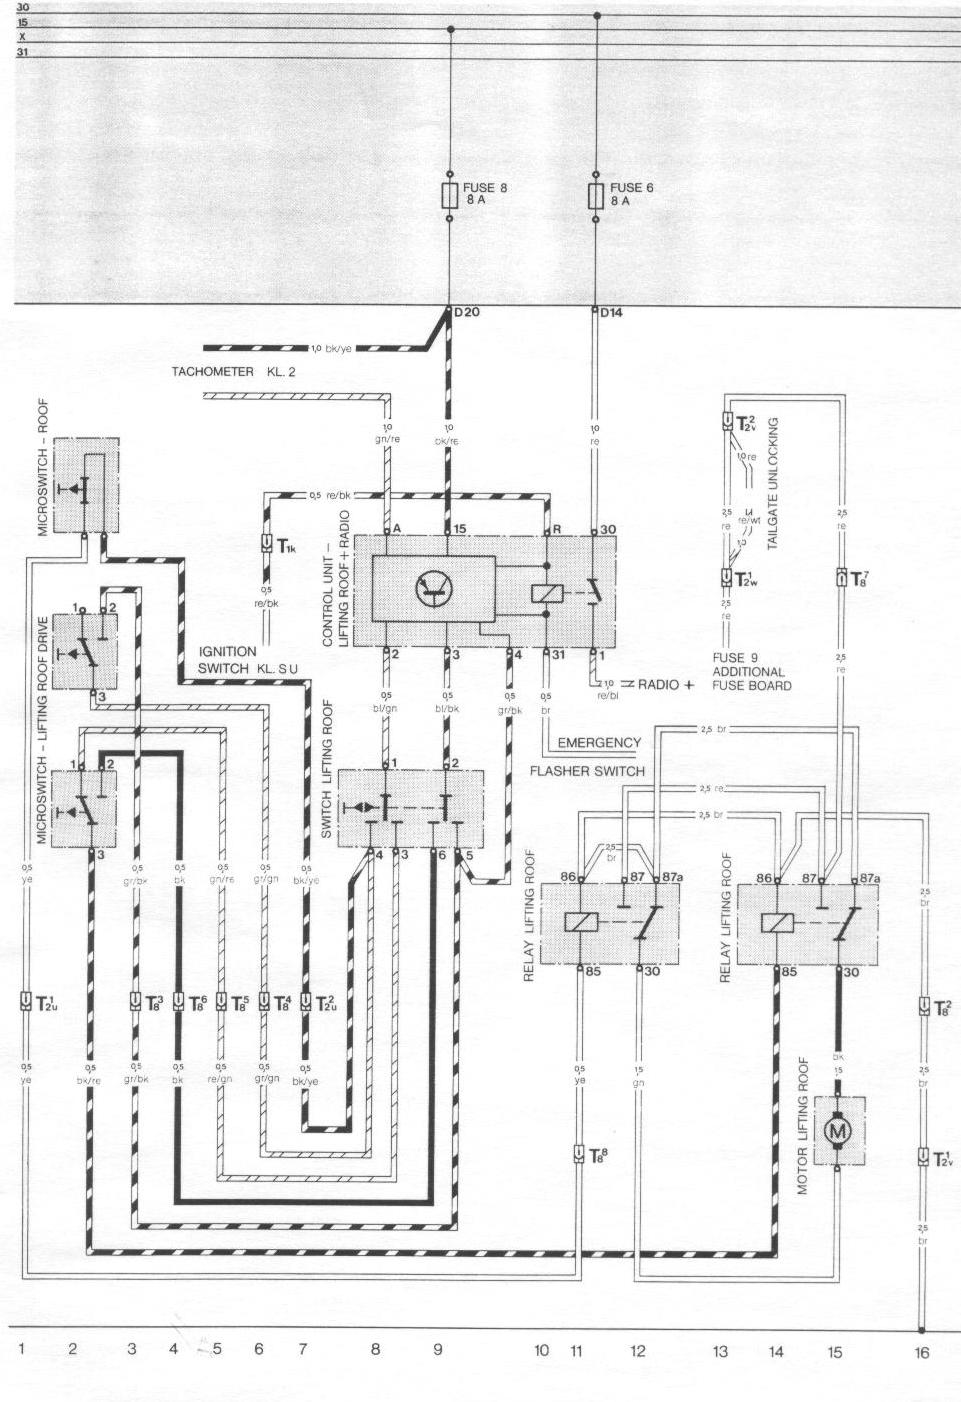 Porsche Ac Wiring Diagrams Great Installation Of Diagram 86 Park Avenue Fuse Box For 944 Simple Rh 50 Mara Cujas De 356 Pre A 928 Air Conditioning